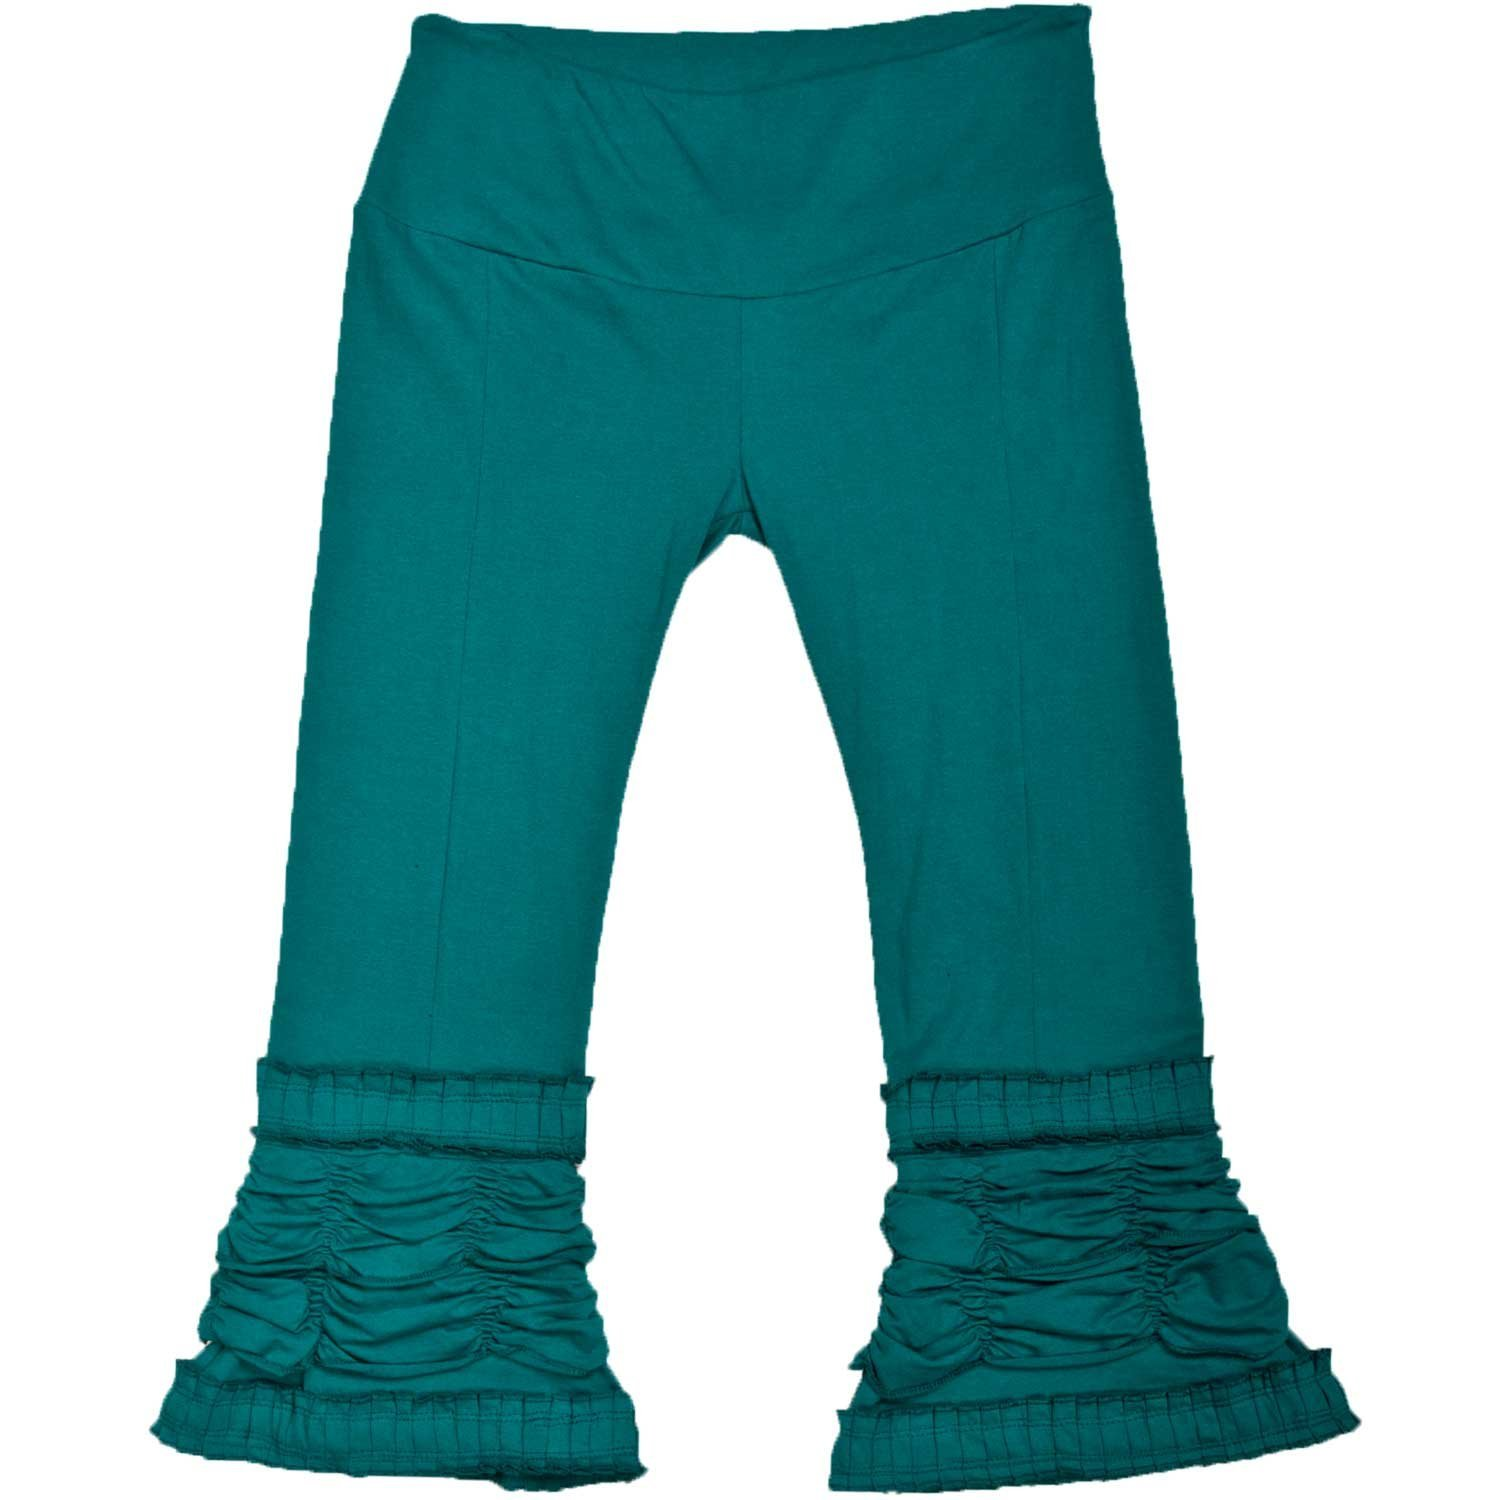 Lady Pirate's Fancy Turquoise Ruffle Ruched Capri Pants - DeluxeAdultCostumes.com